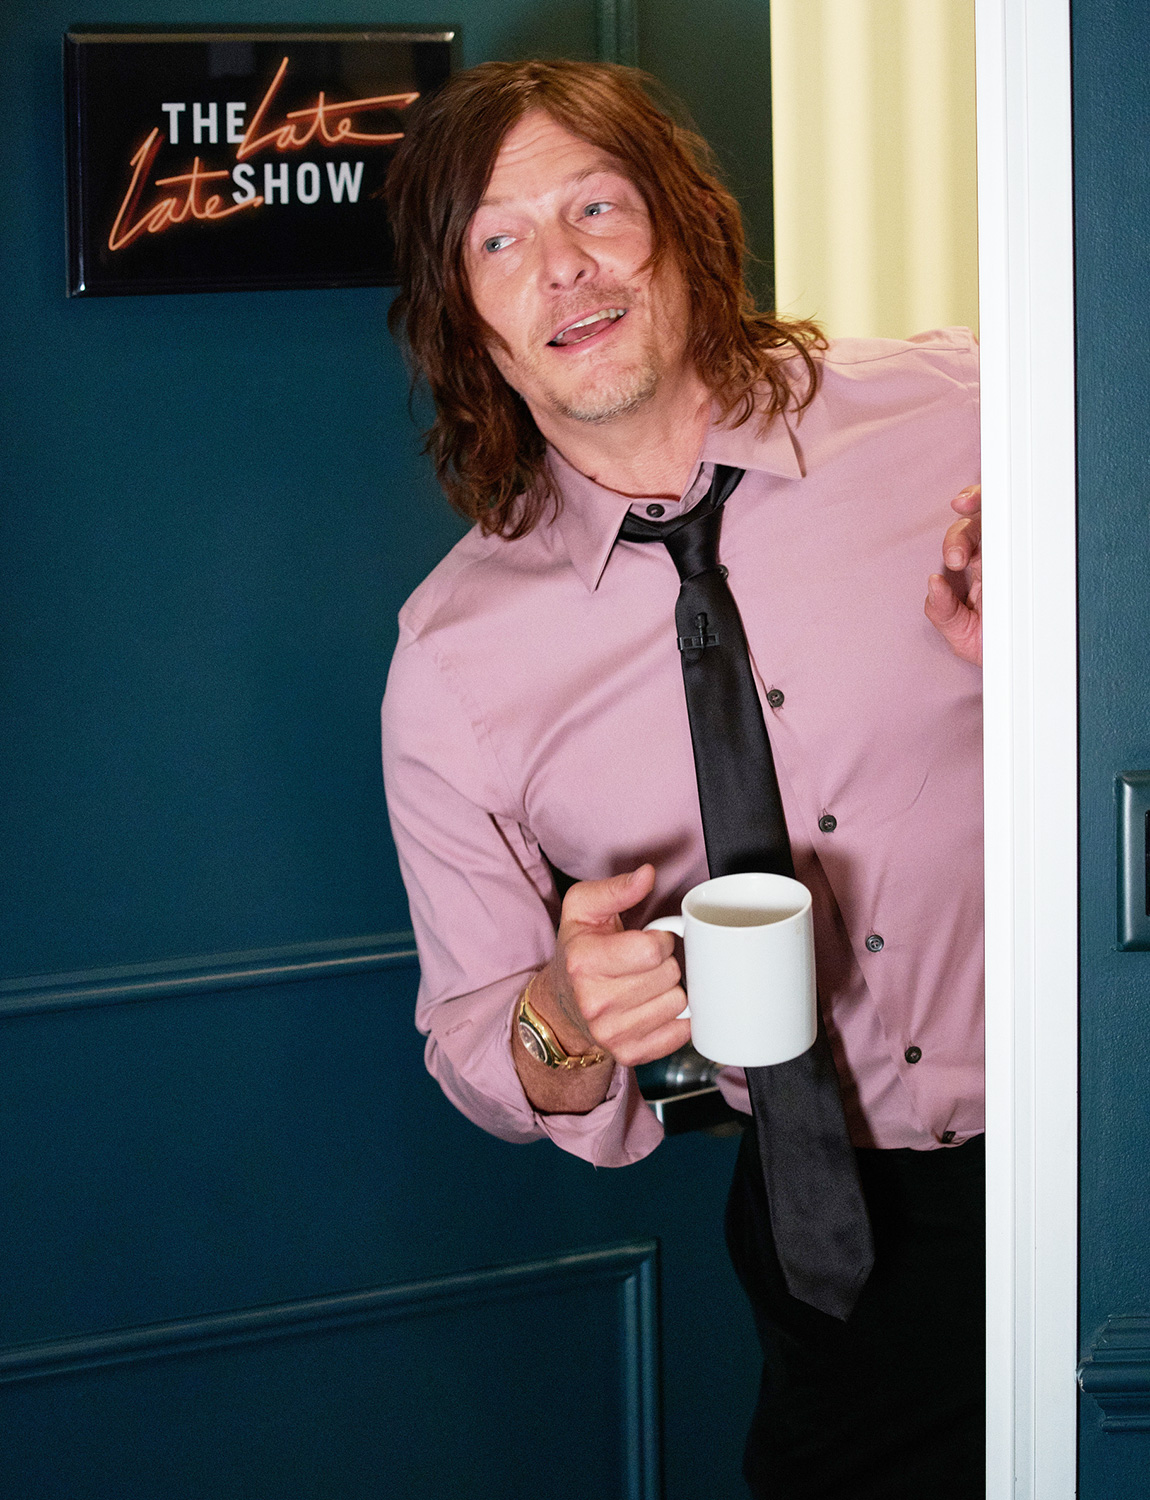 The Late Late Show with James Corden airing Wednesday, March 4, 2020, with guests Liv Tyler, Norman Reedus